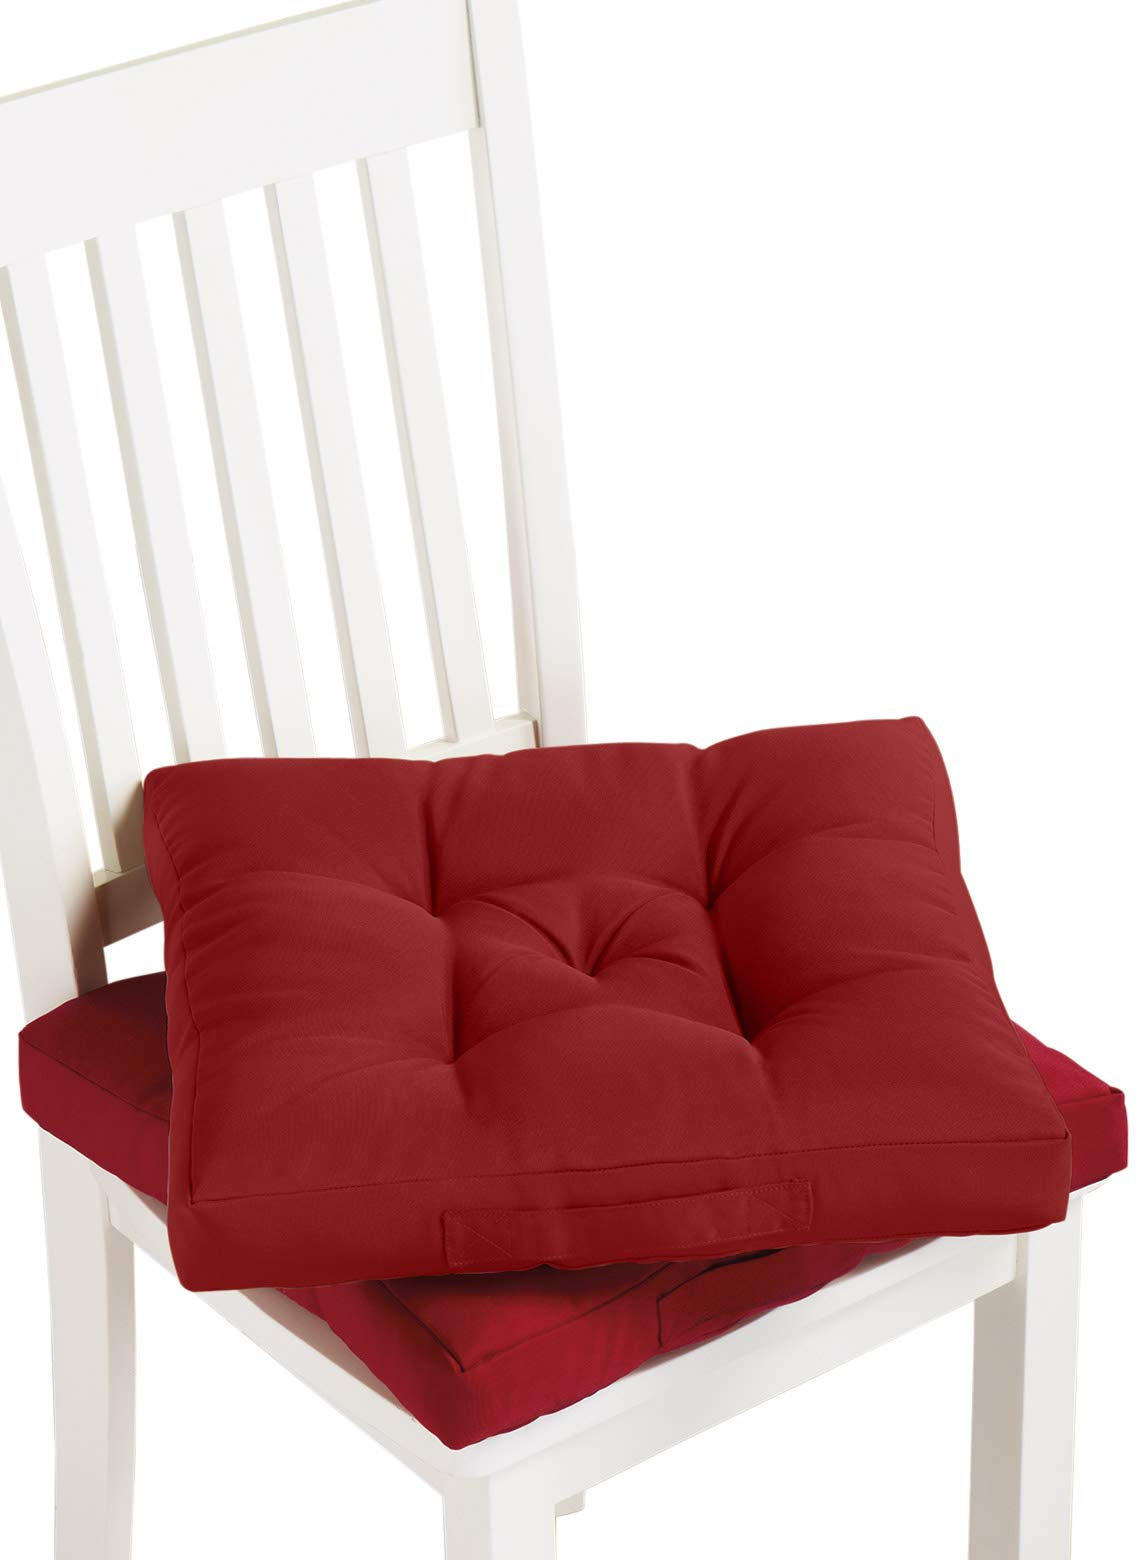 Carol Wright Gifts Carry Cushion, Color Burgundy, Burgundy by Carol Wright Gifts (Image #1)